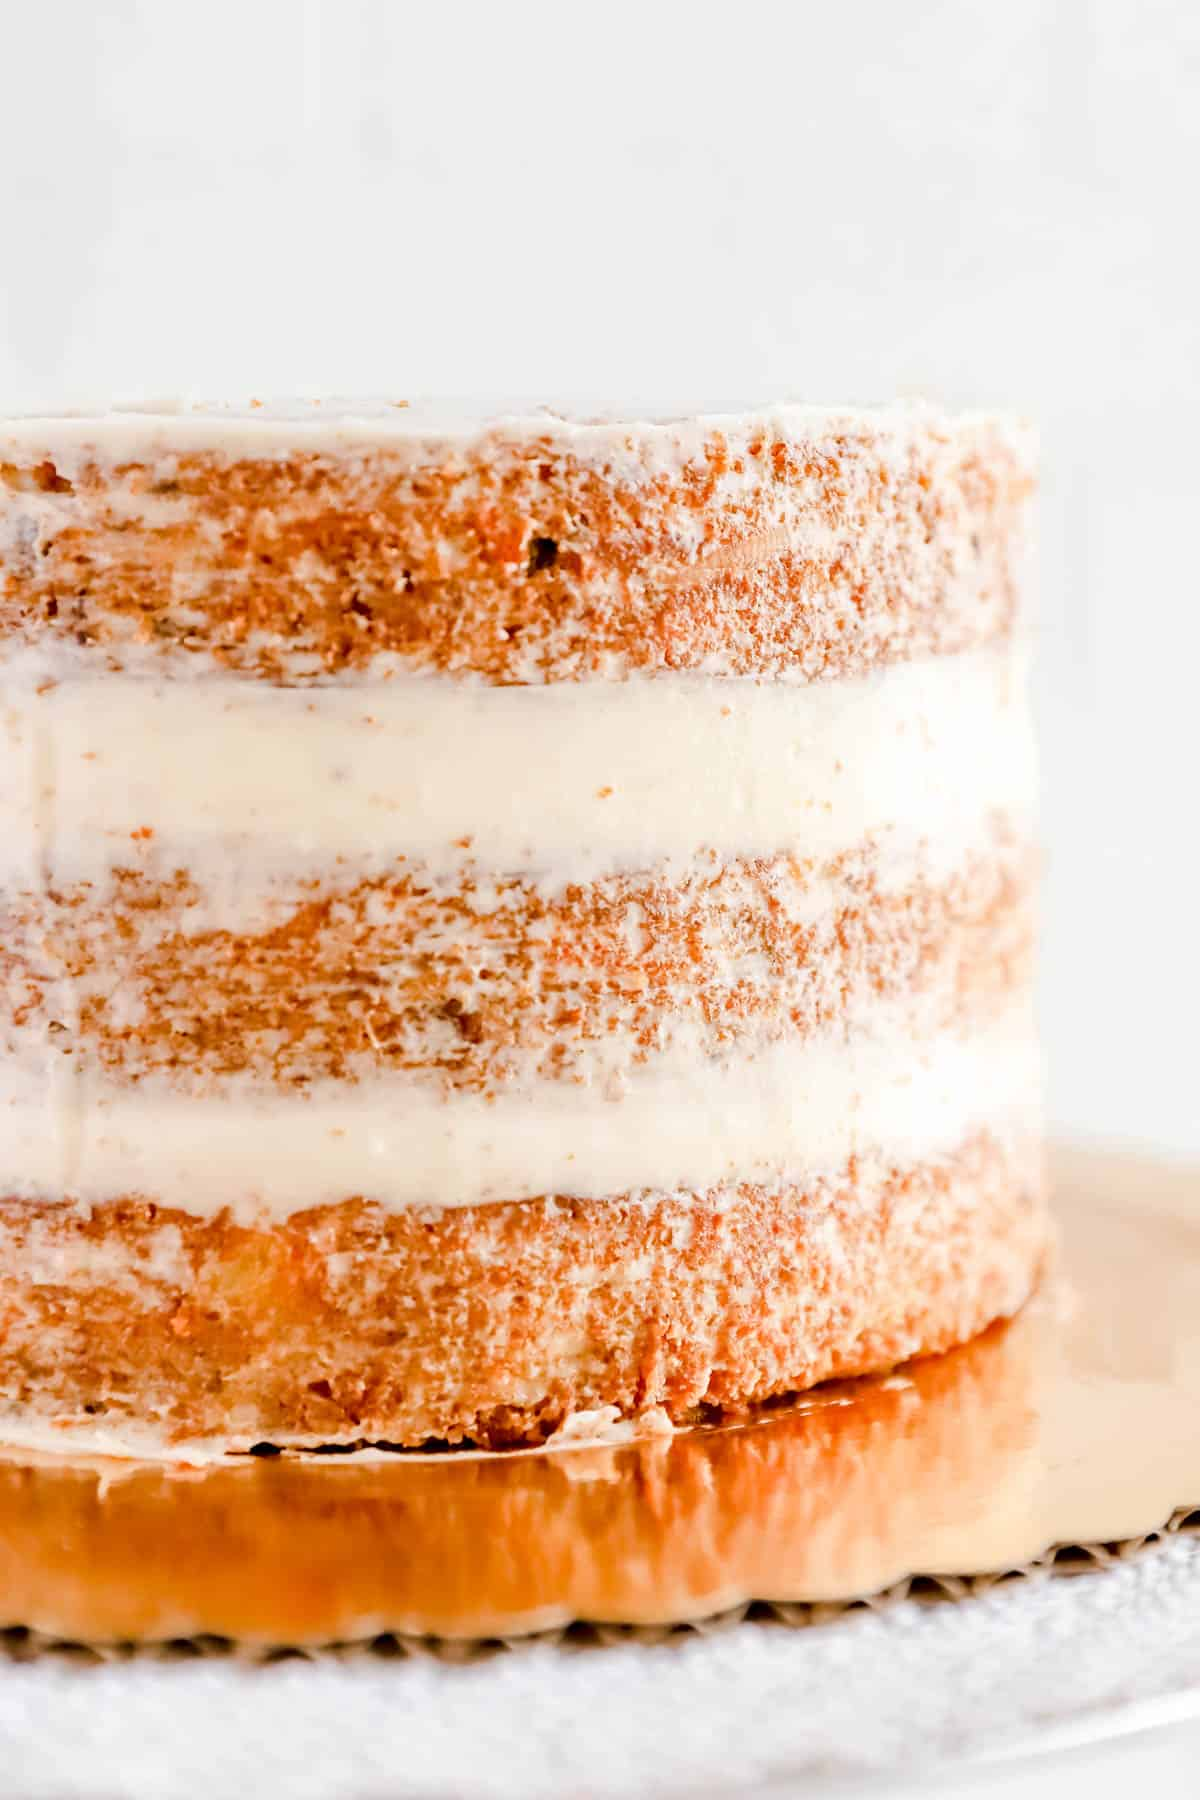 3 baked round carrot cake layers filled and crumb coated with cream cheese frosting.